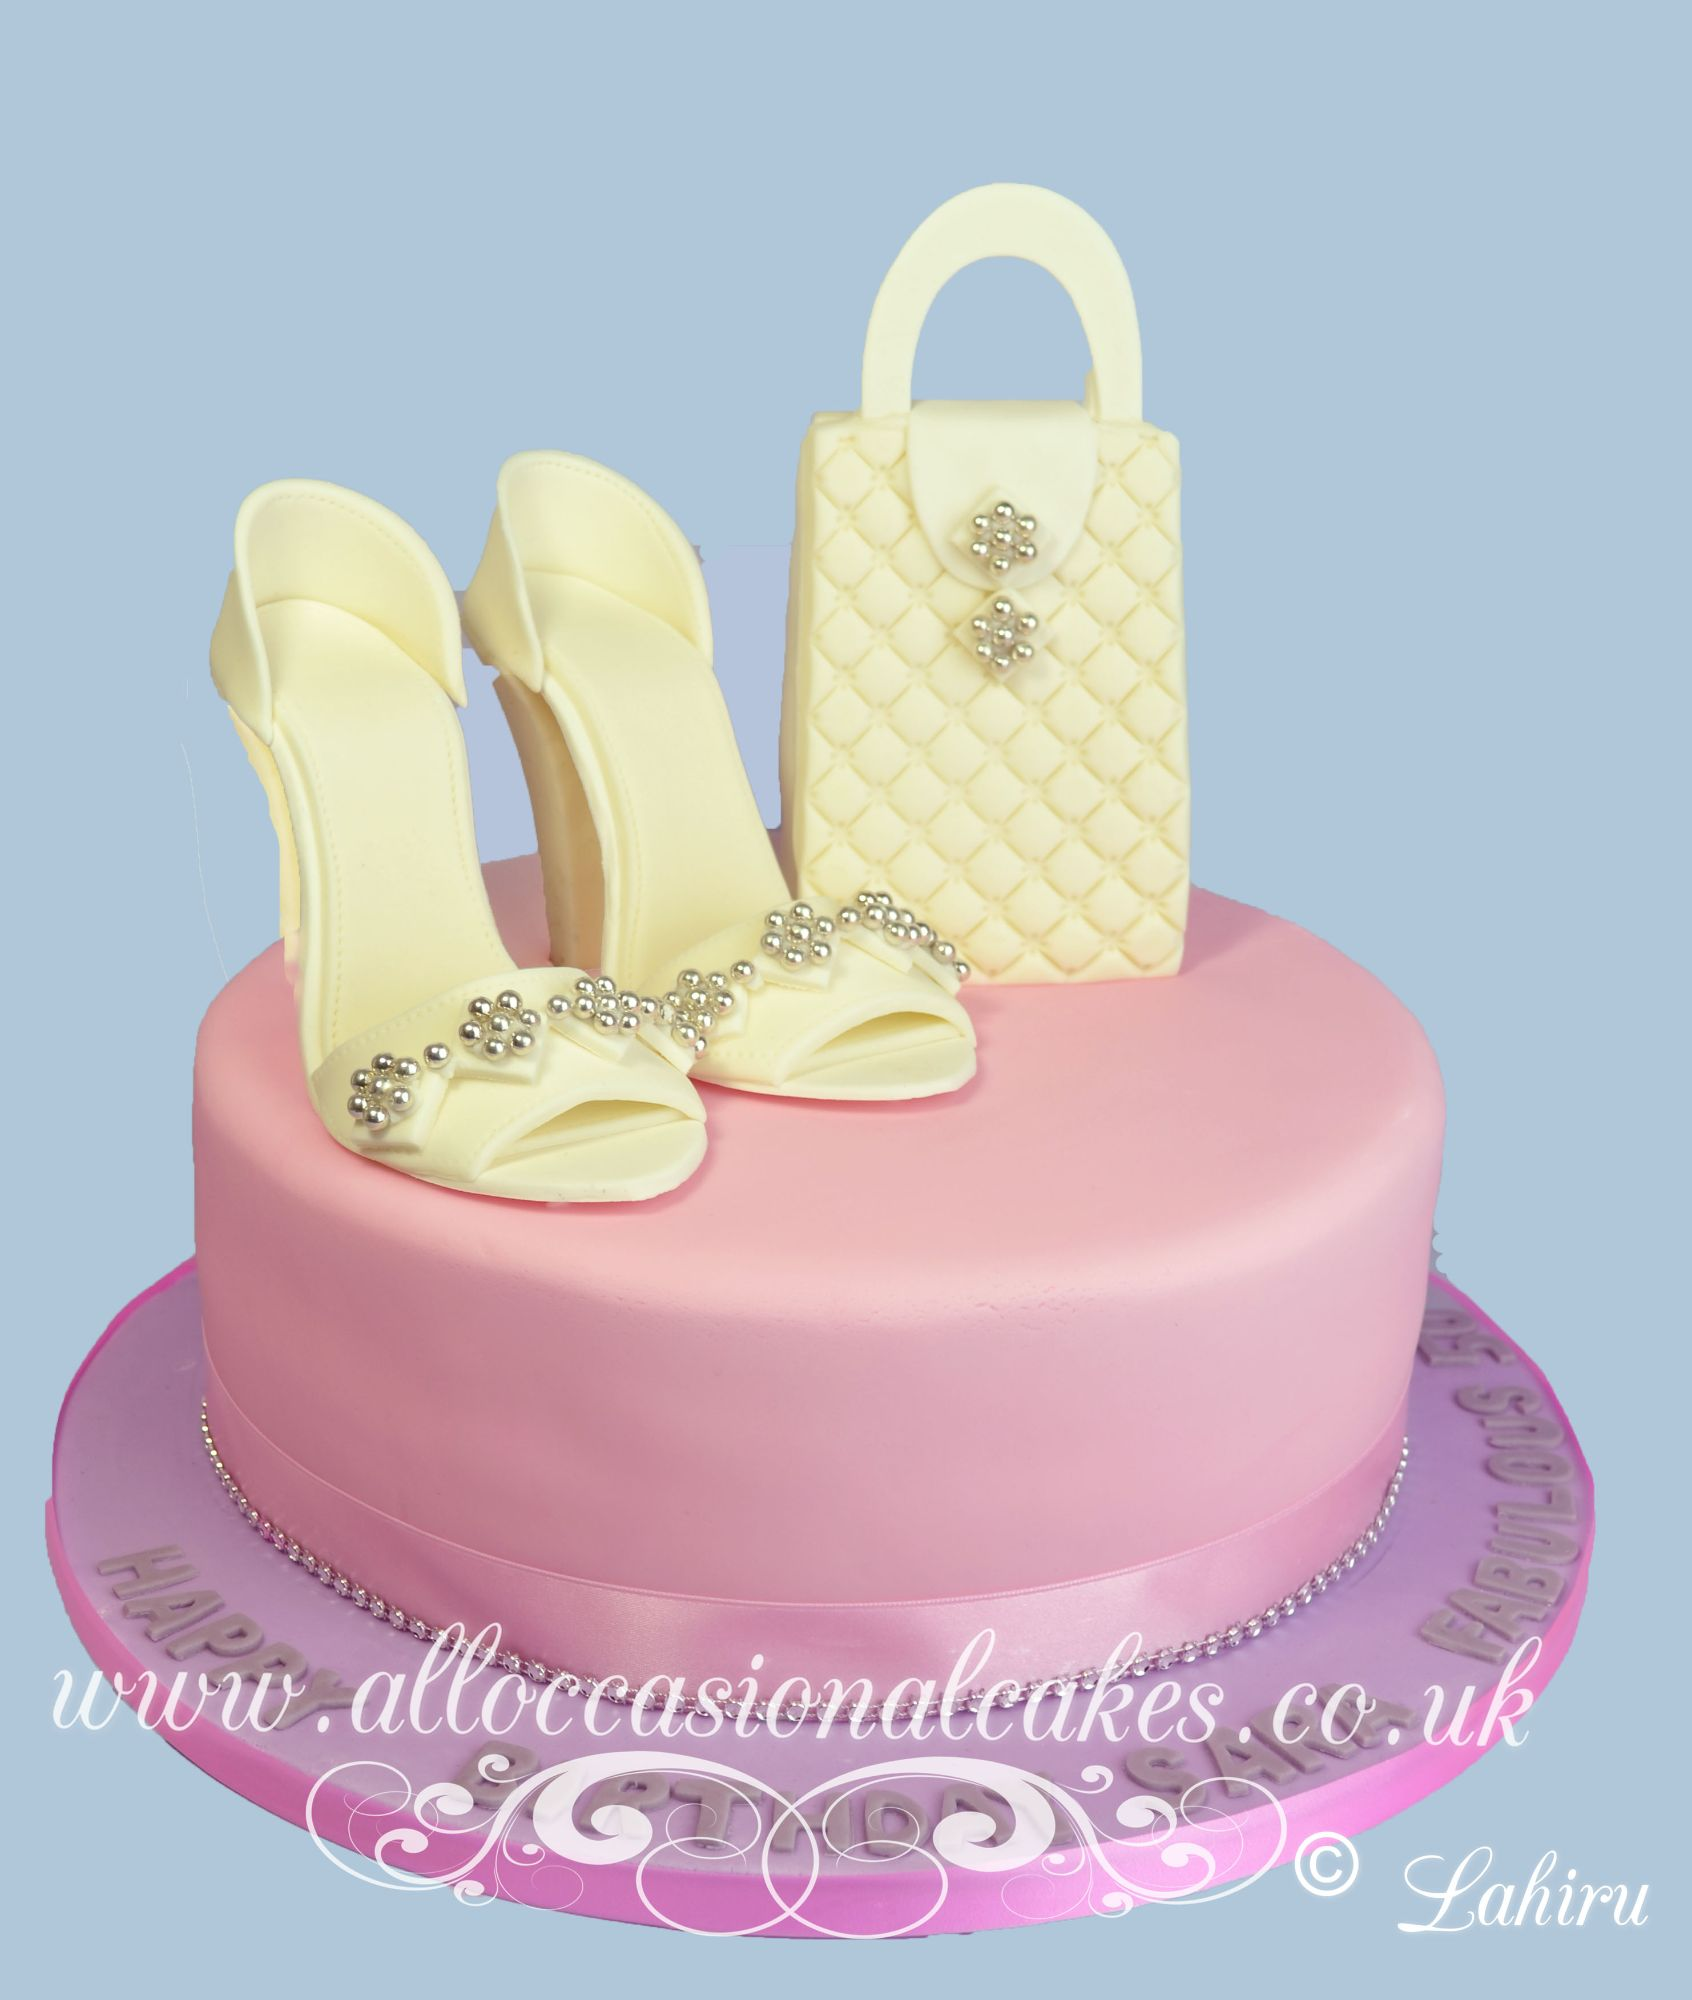 cream high heels with handbag cake